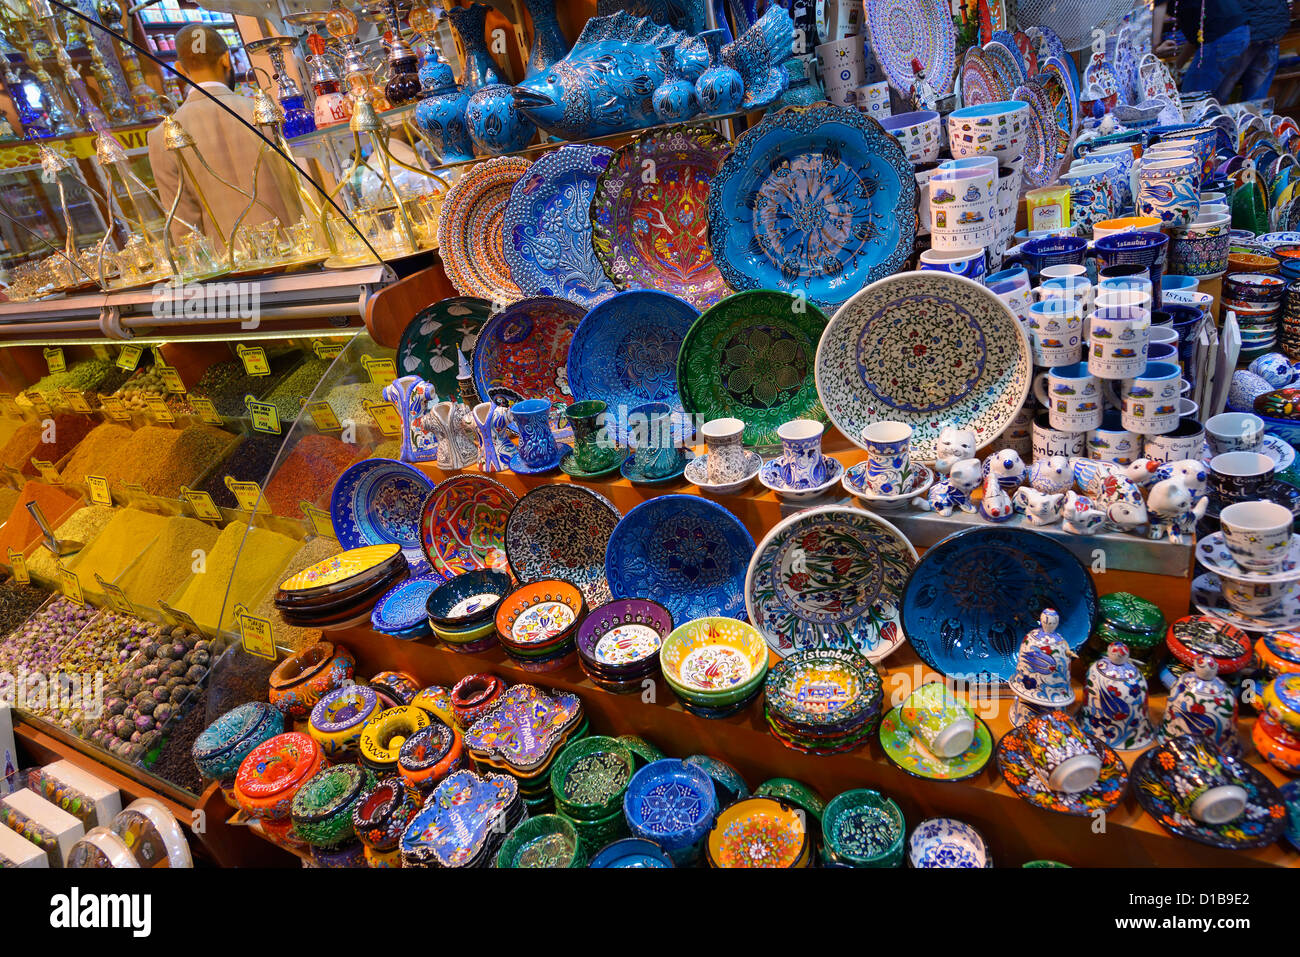 Painted ceramic display in the Egyptian Bazaar Istanbul next to a spice shop Eminonu Fatih Turkey - Stock Image